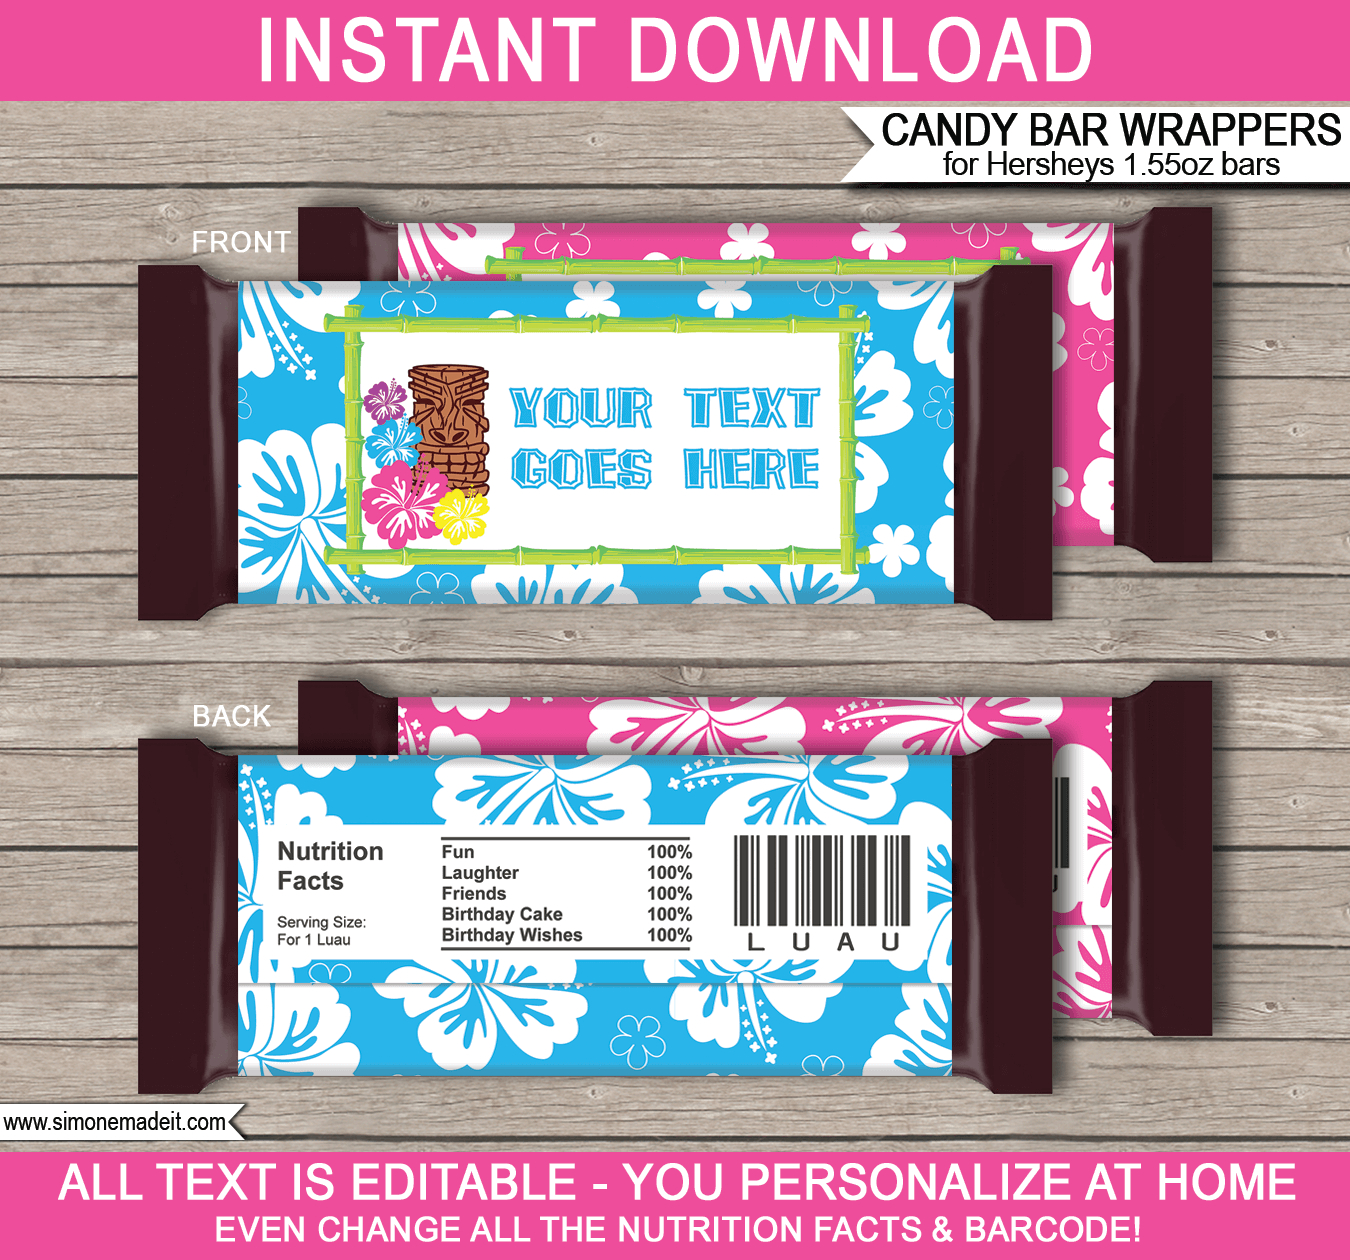 Luau Hershey Candy Bar Wrappers | Personalized Candy Bars - Free Printable Candy Bar Wrappers